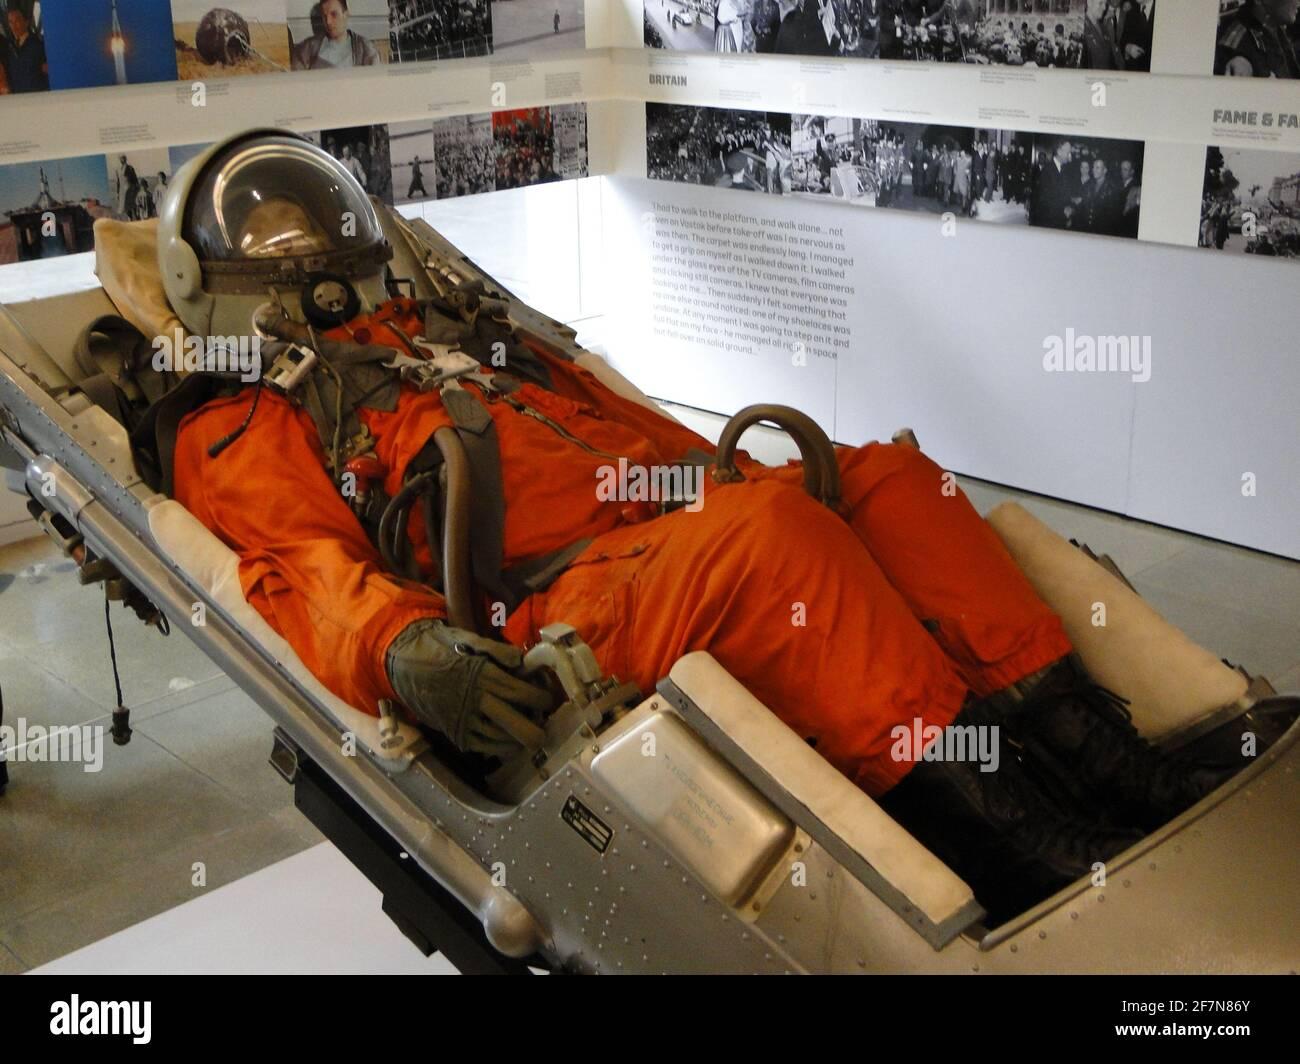 Unveiling the statue to Yuri Gagarin - the first man in cosmos at British Council building in London, UK Stock Photo